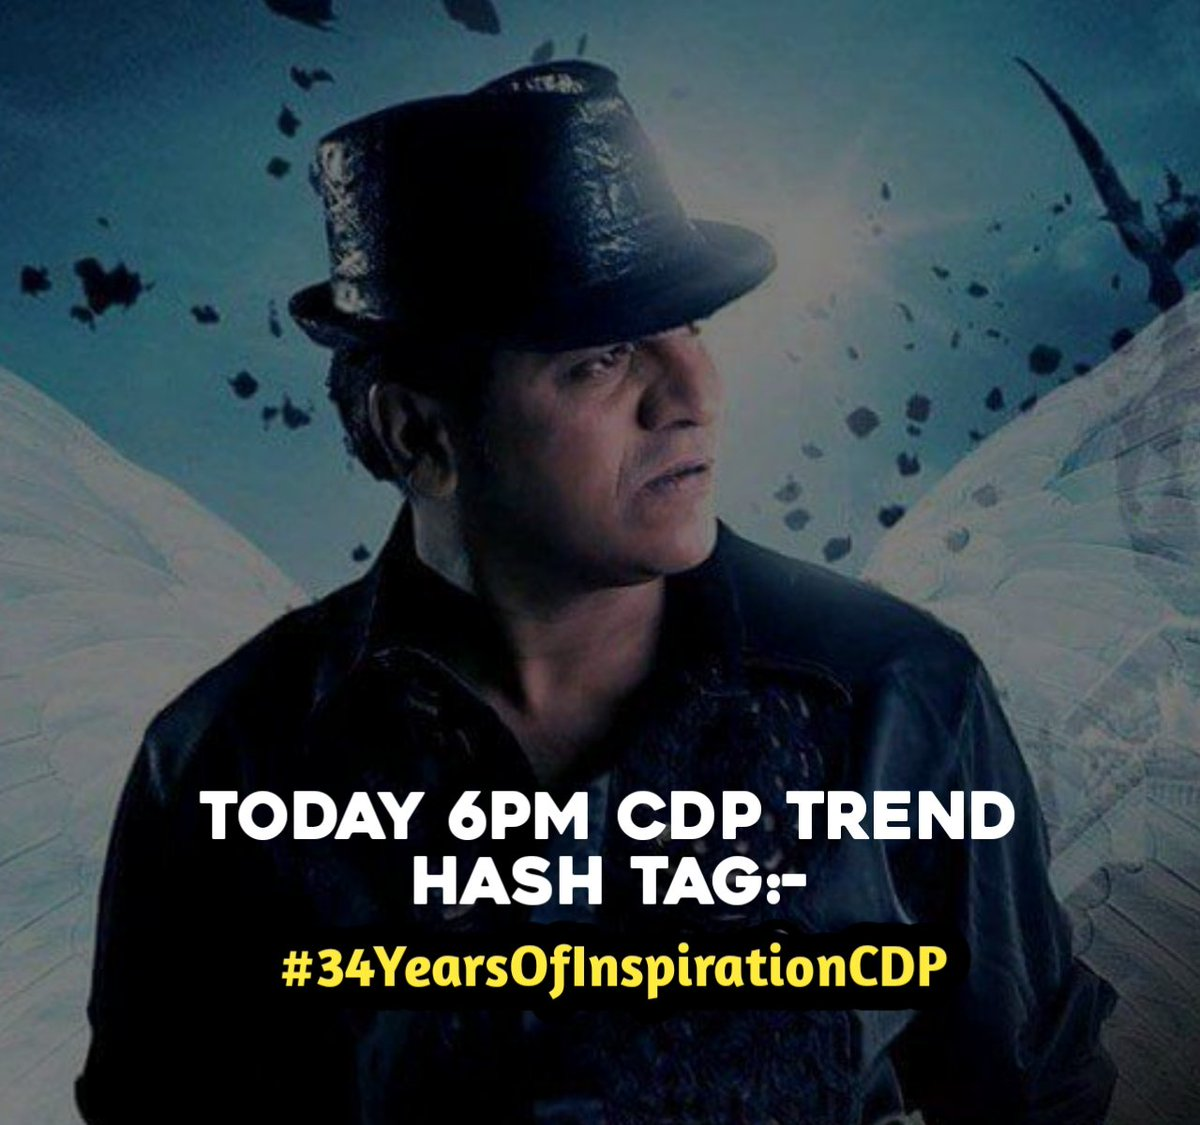 Get Ready Guy's 😎🔥✌️👍 CDP Trending  #BossOfSandalwood @NimmaShivanna Today 6pm trend hash tag👇 #34YearsOfInspirationCDP @ShivaSainya @DrShivuBrigades @RaajavamshaR @youthiconfc @dharwadtm @shivu_adda  @PRK_Trends @PowerStarPunith